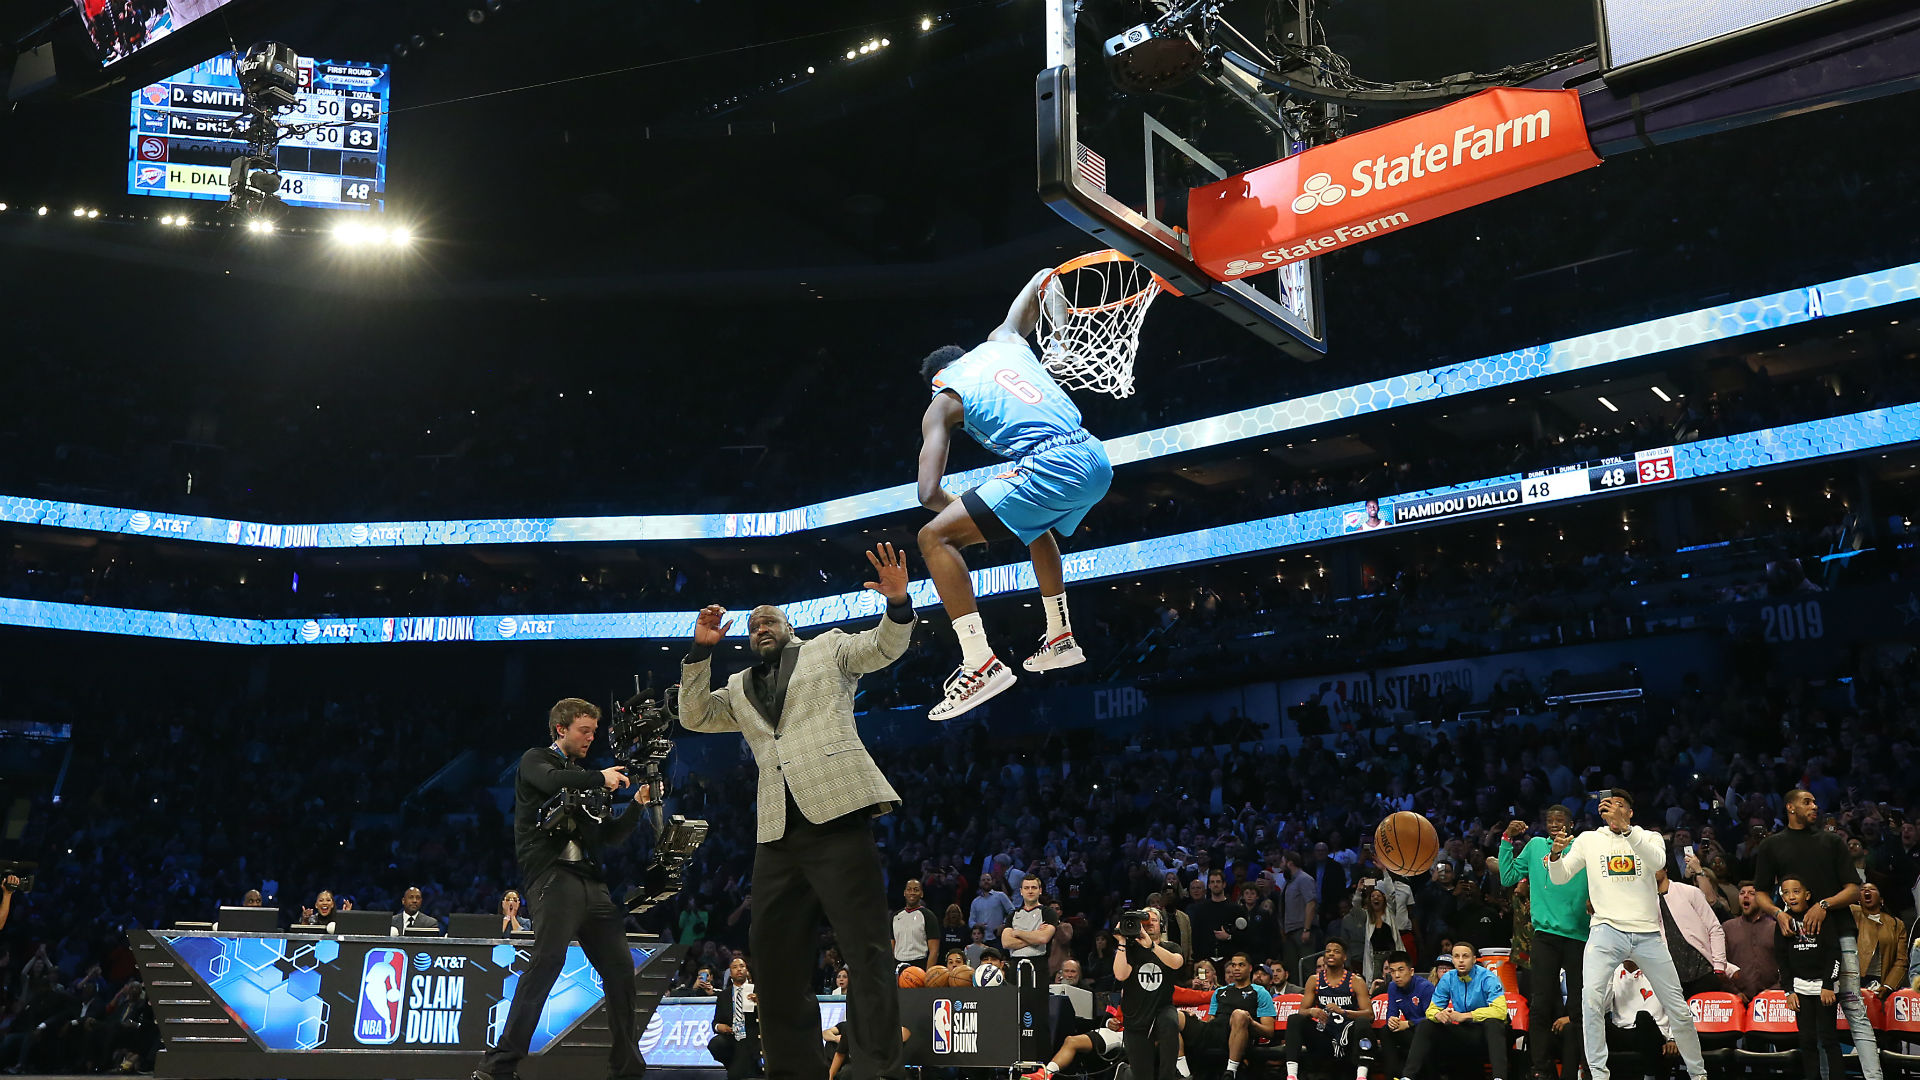 Social media reacts to NBA All-Star Saturday night